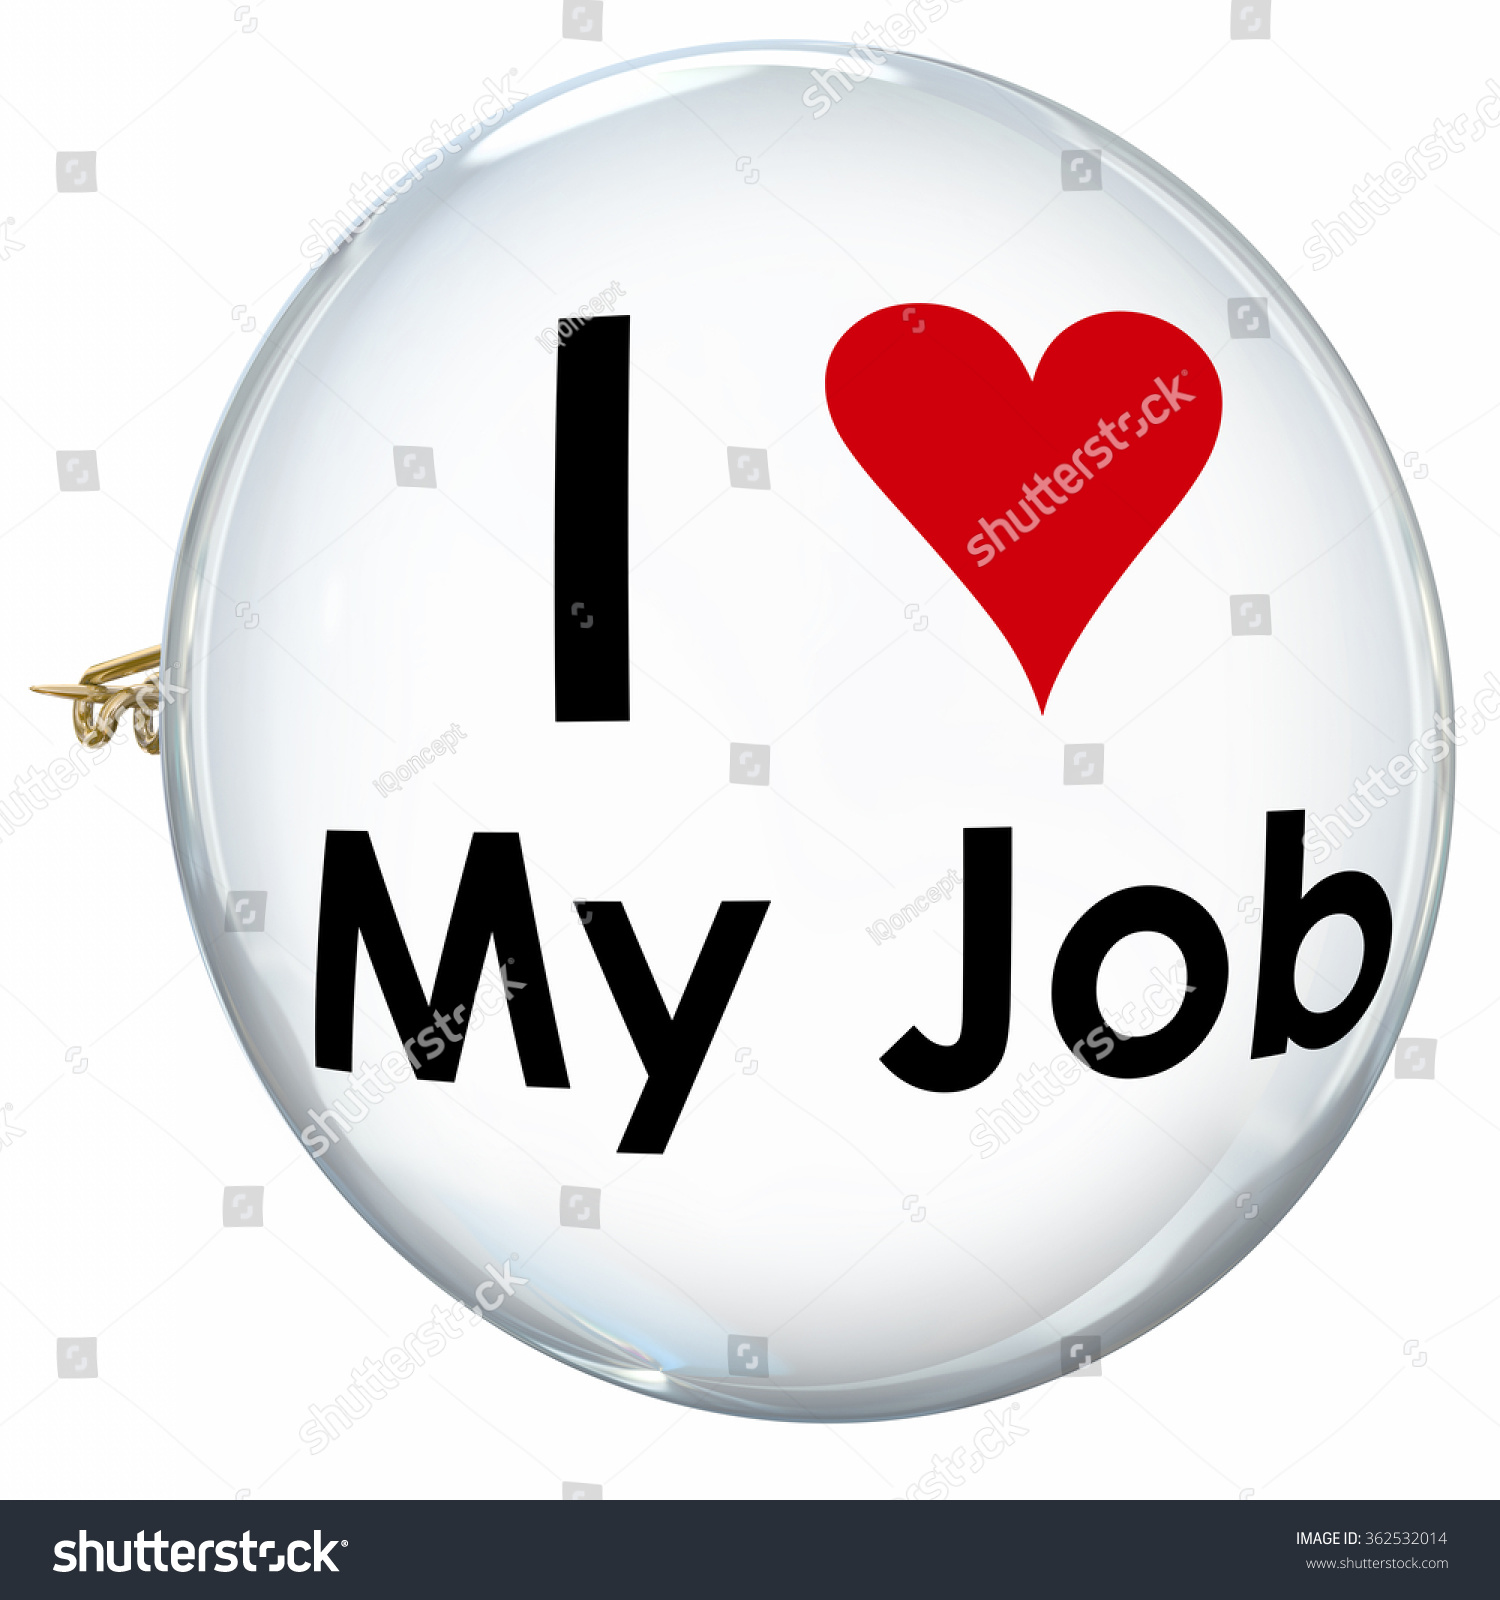 love my job words on button stock illustration  i love my job words on a button or pin to illustrate satisfaction and pride working